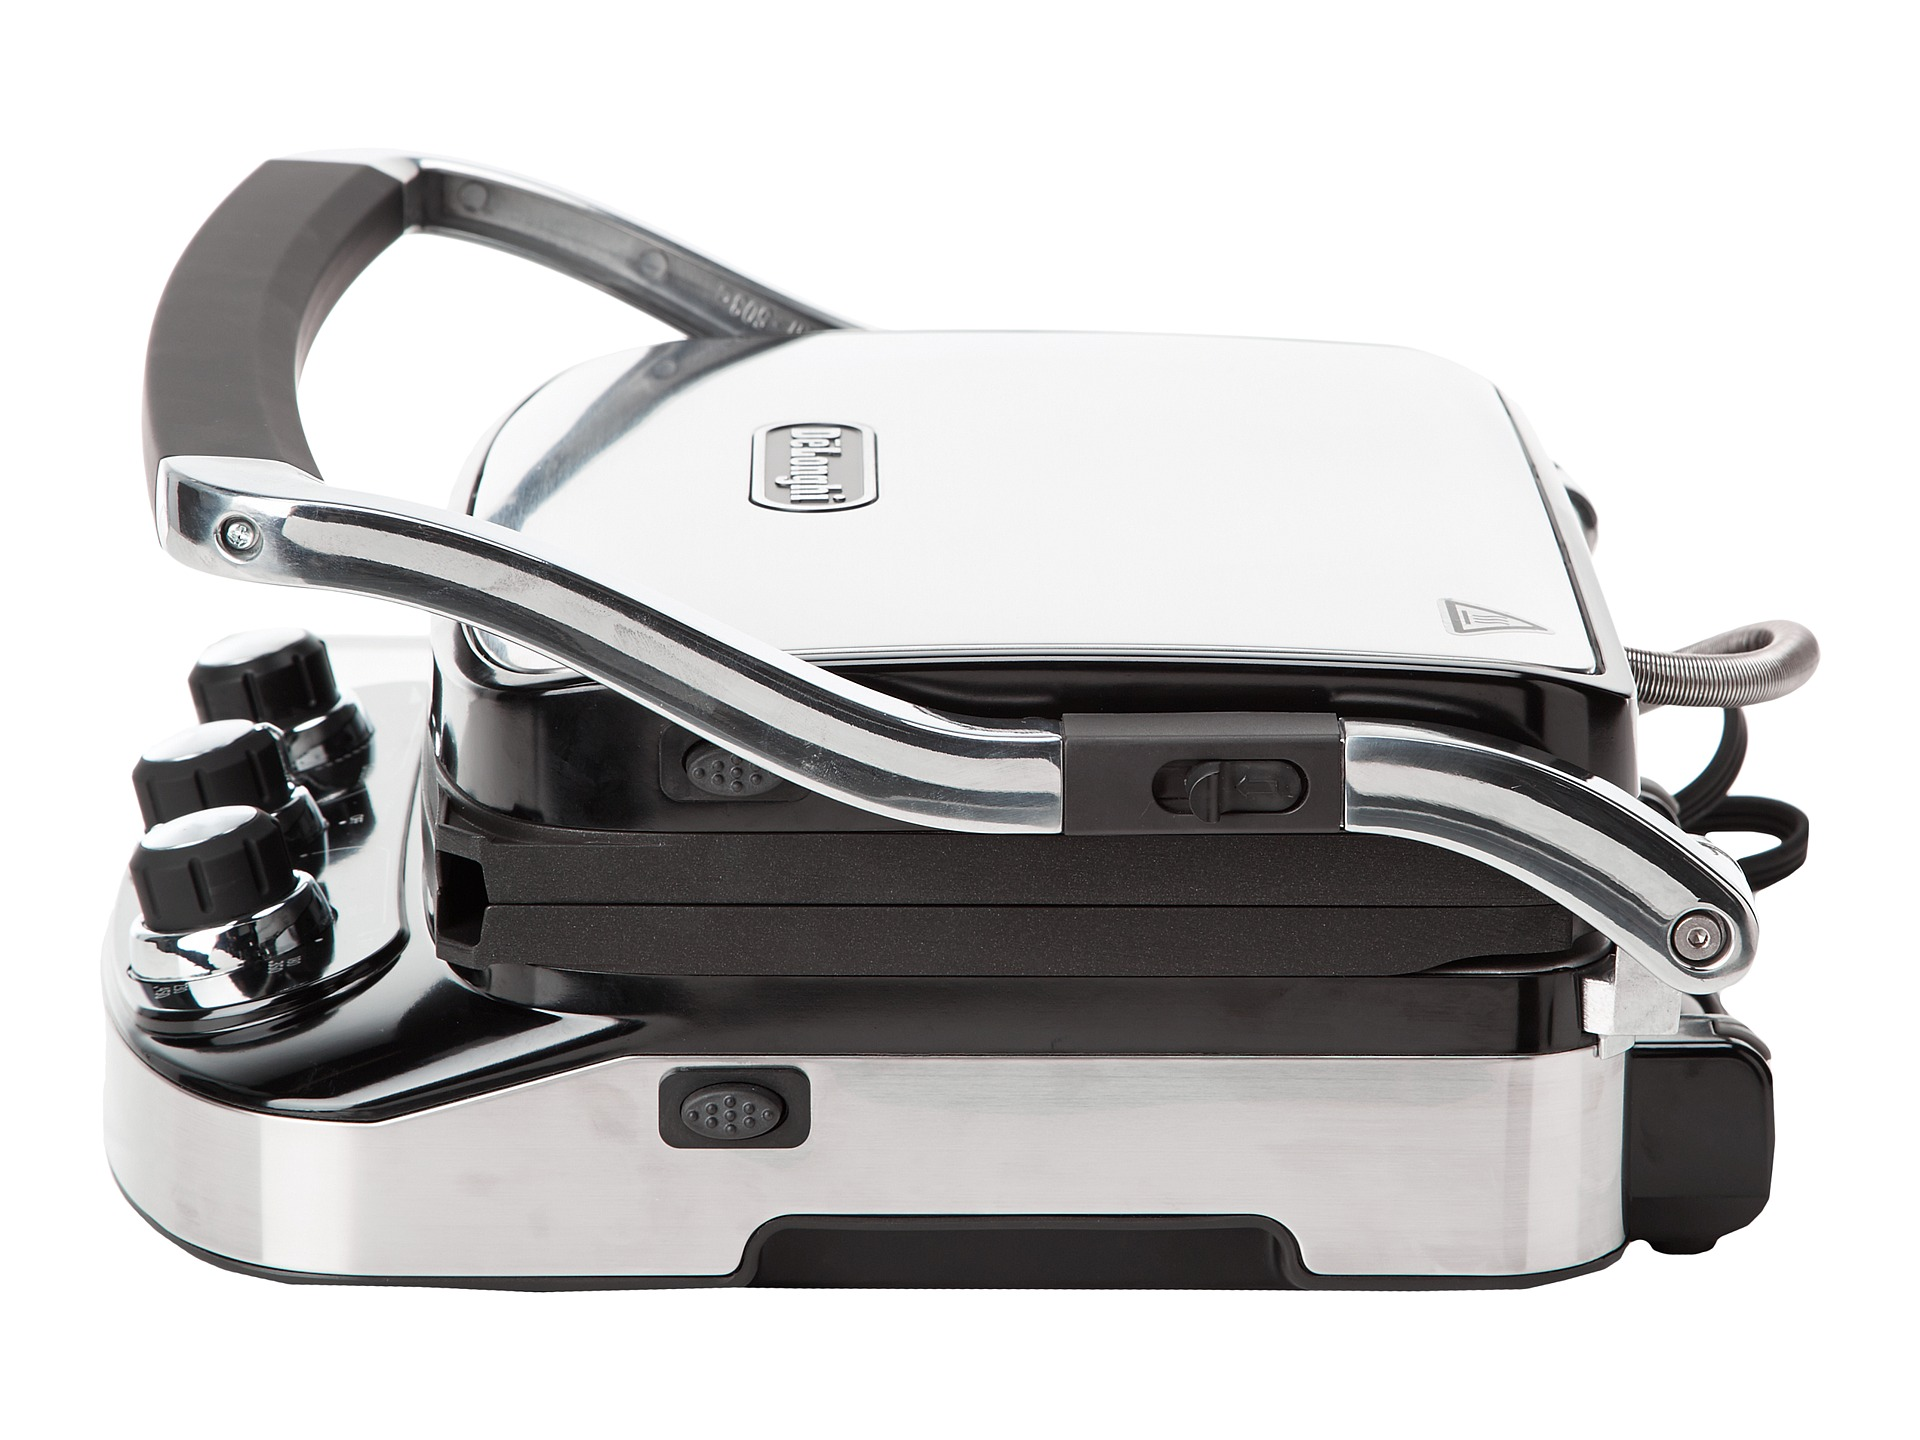 No Results For Delonghi Cgh902 Panini Maker Search